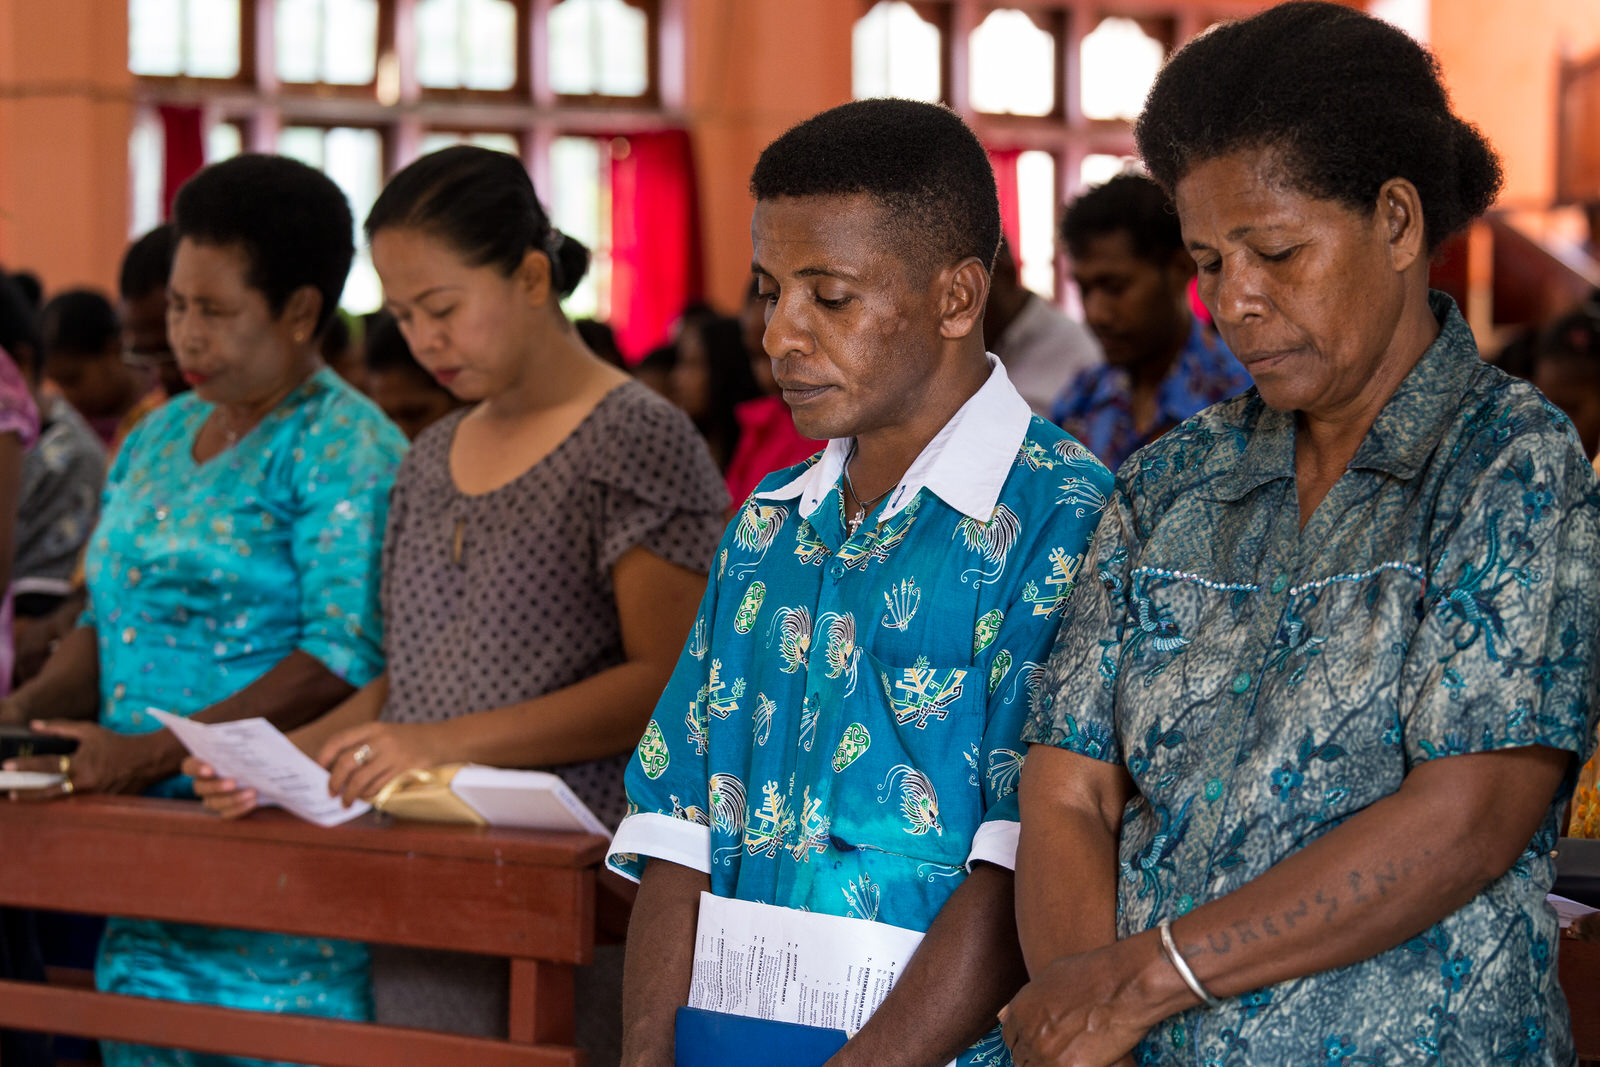 Yosua attends Sunday worship with his family. He is grateful and thanks God for his health.